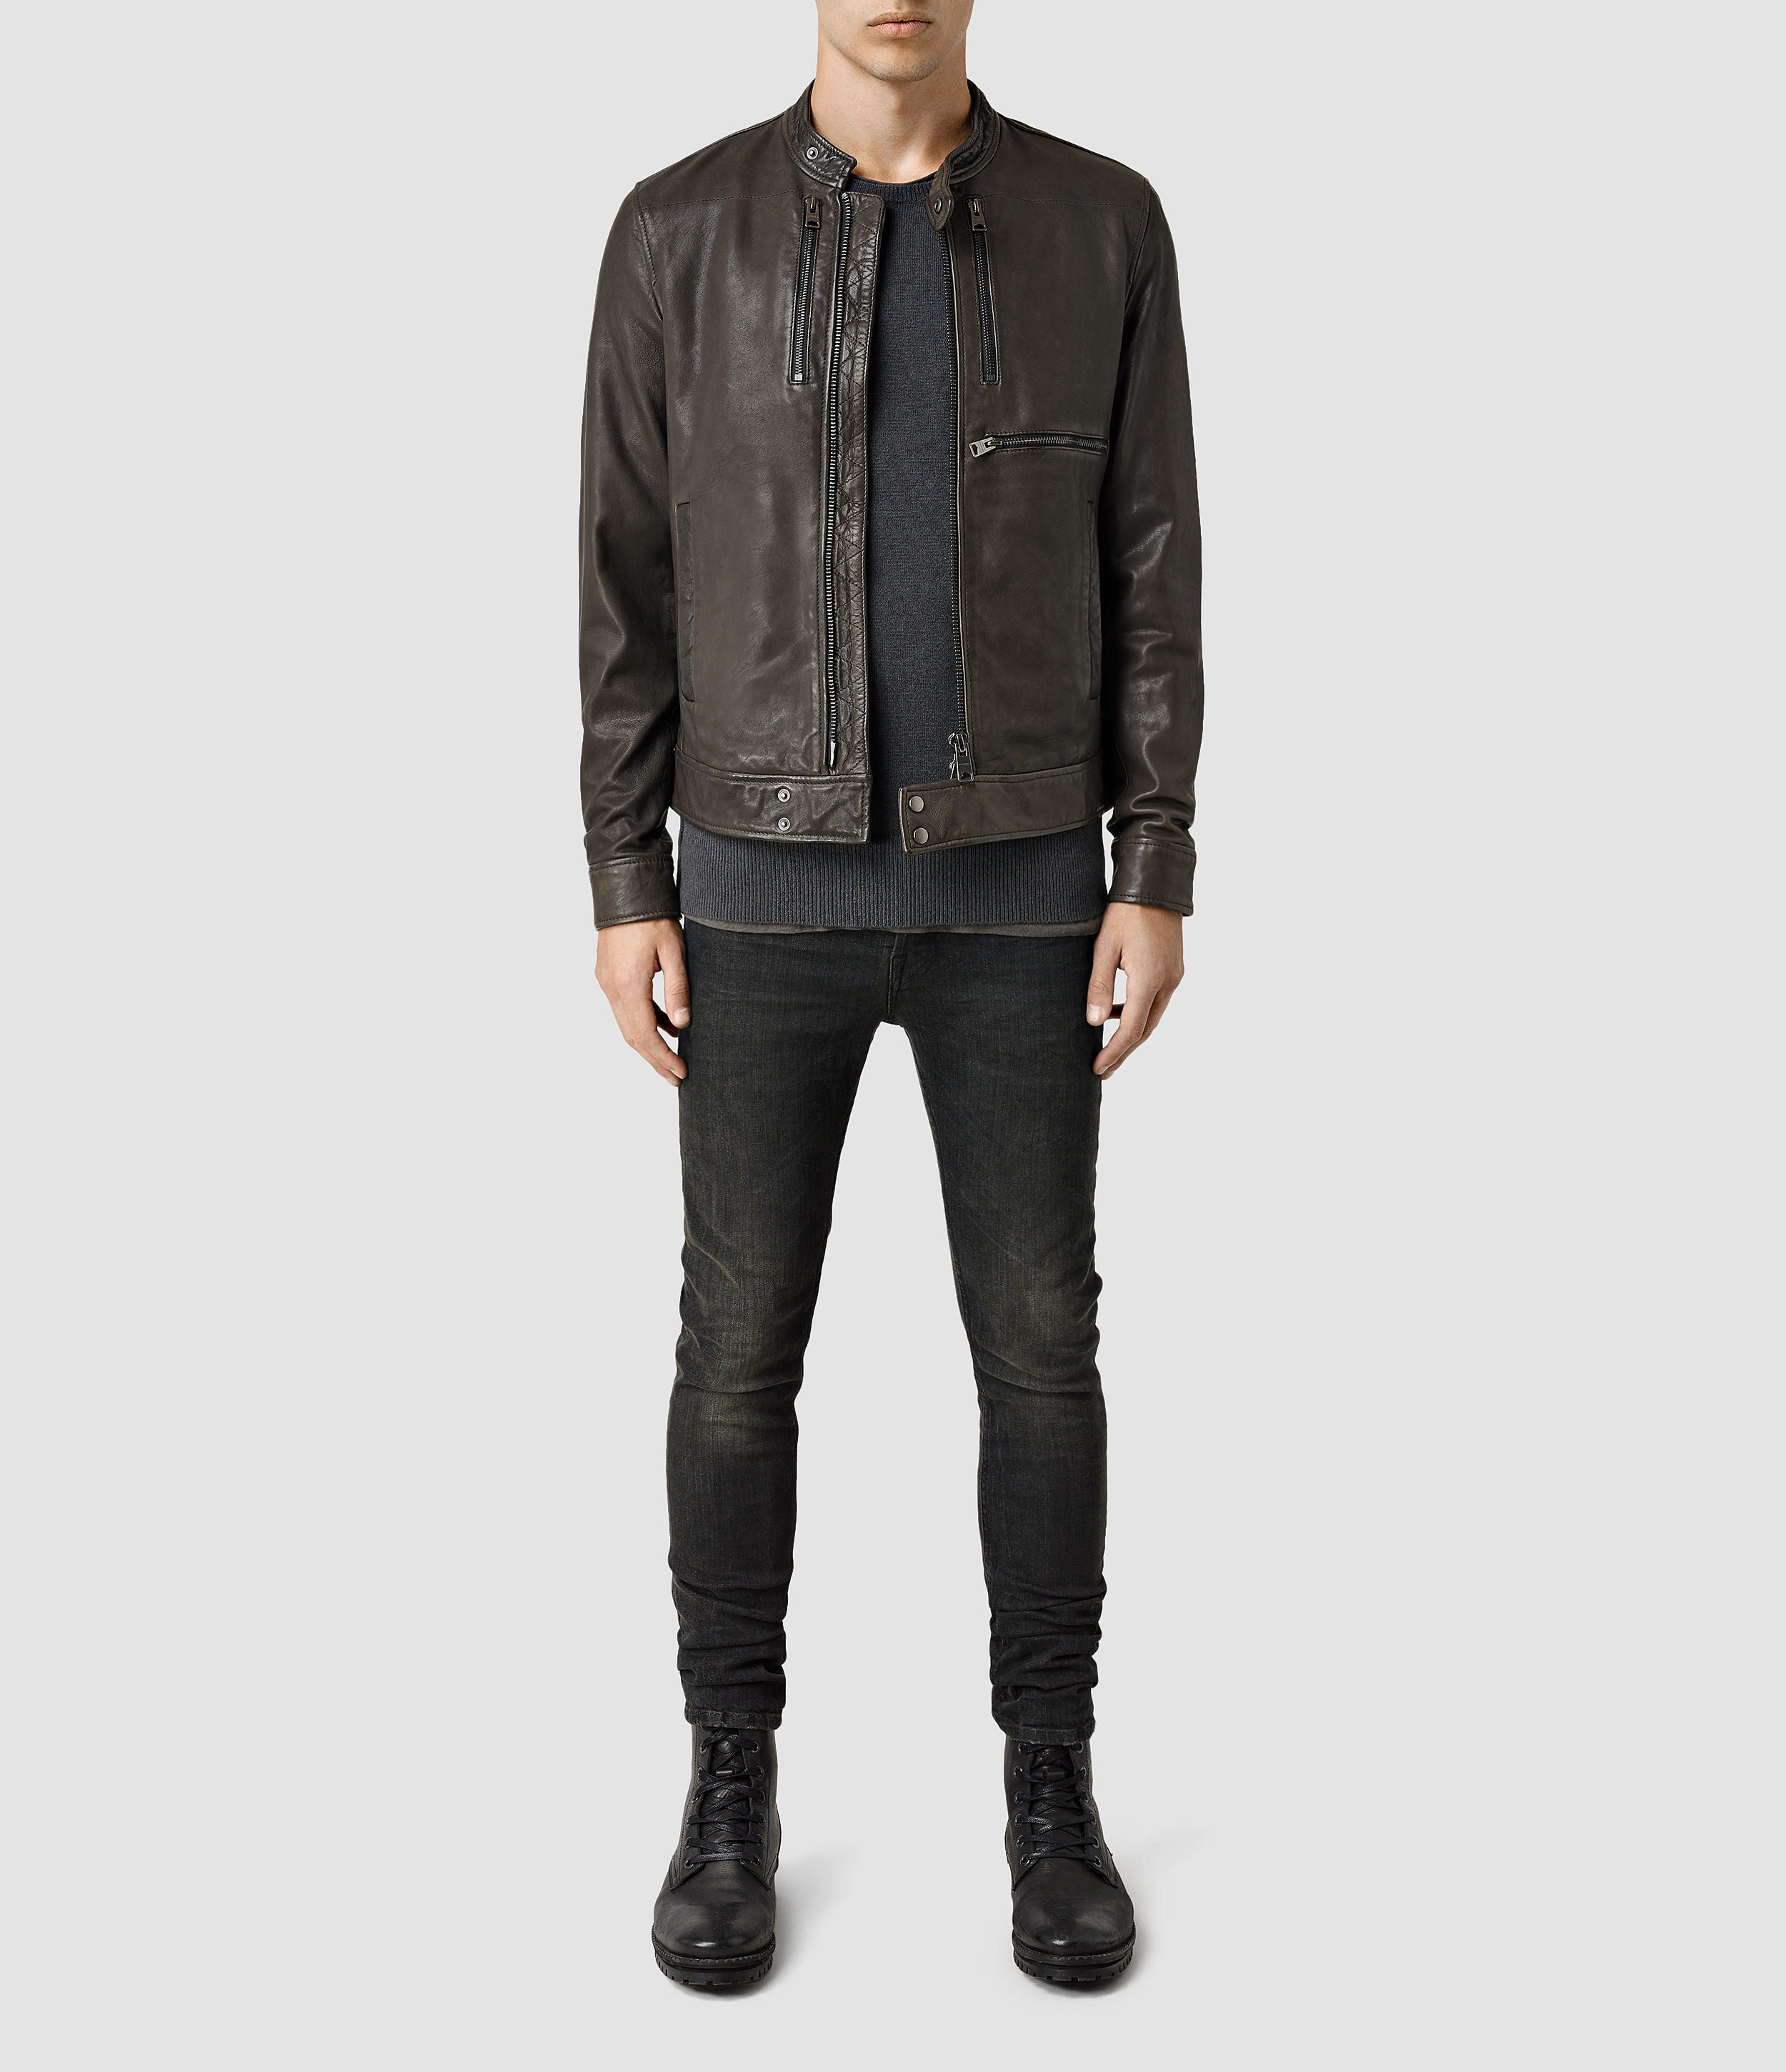 Mens leather jackets all saints